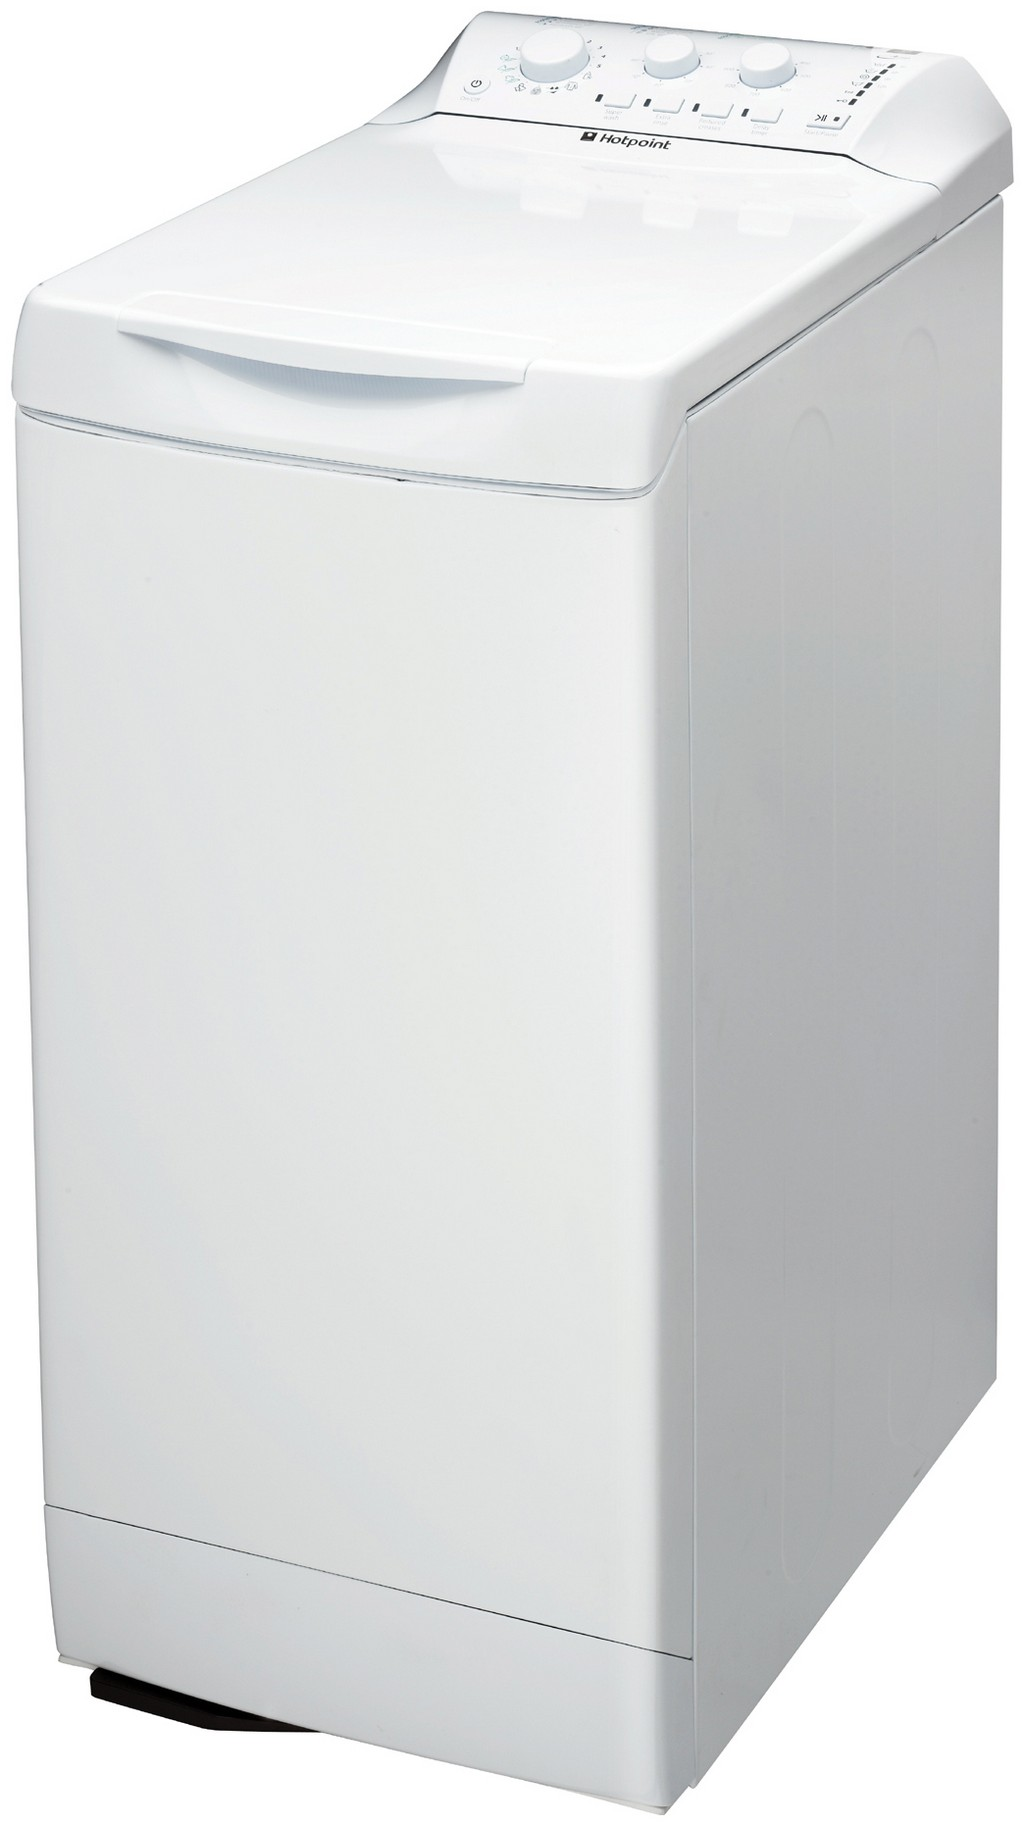 bosch washing machine, washing machine, washing machine rental